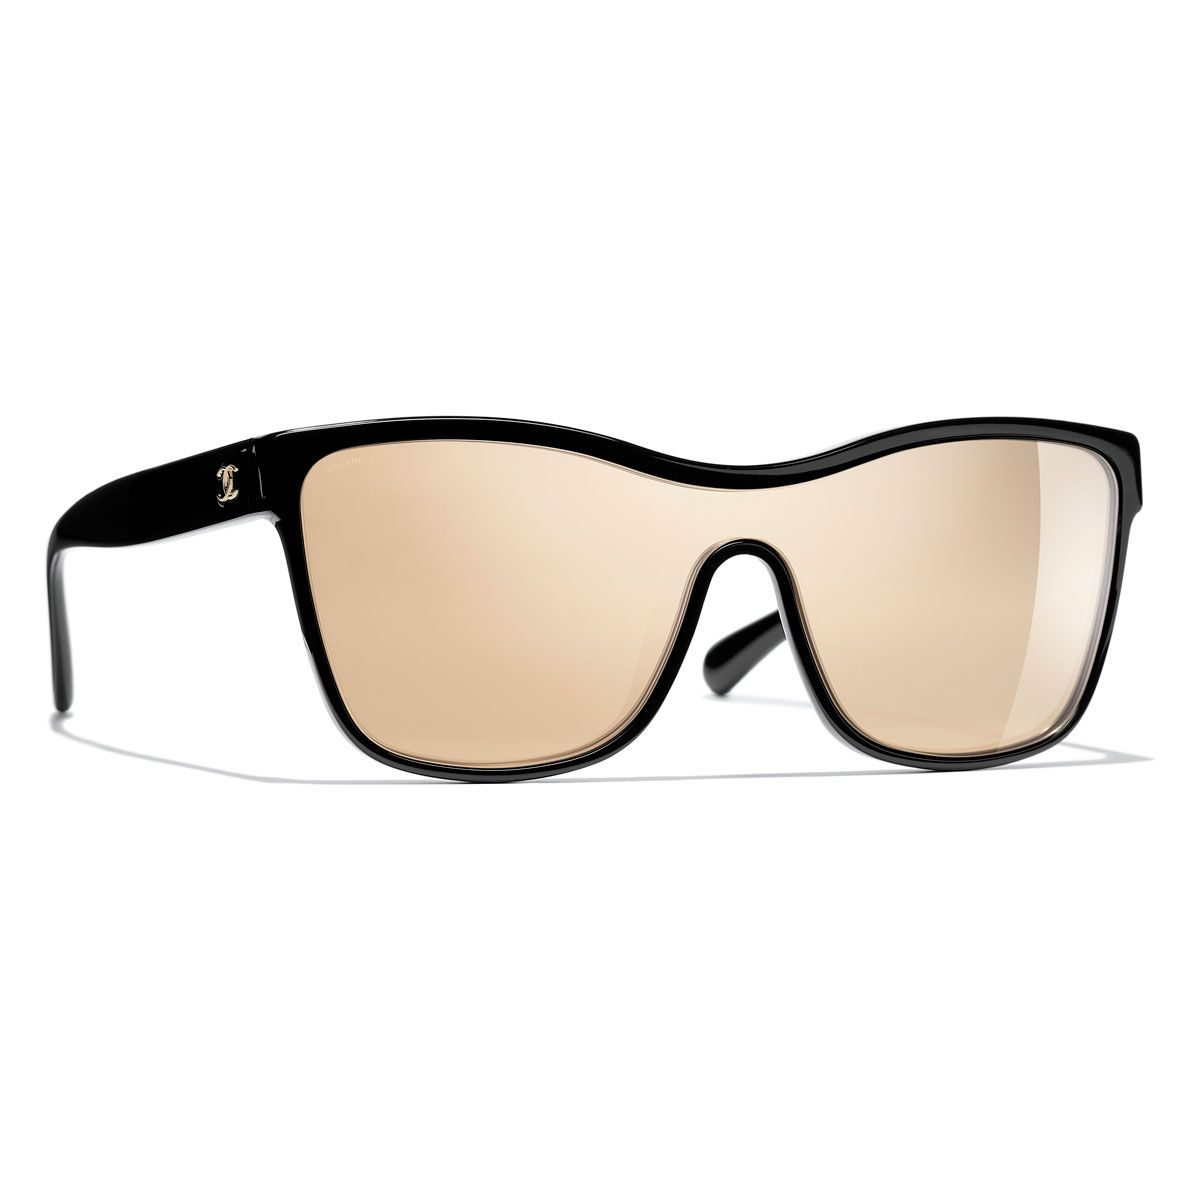 Shield Sunglasses 337.5 Sunglasses